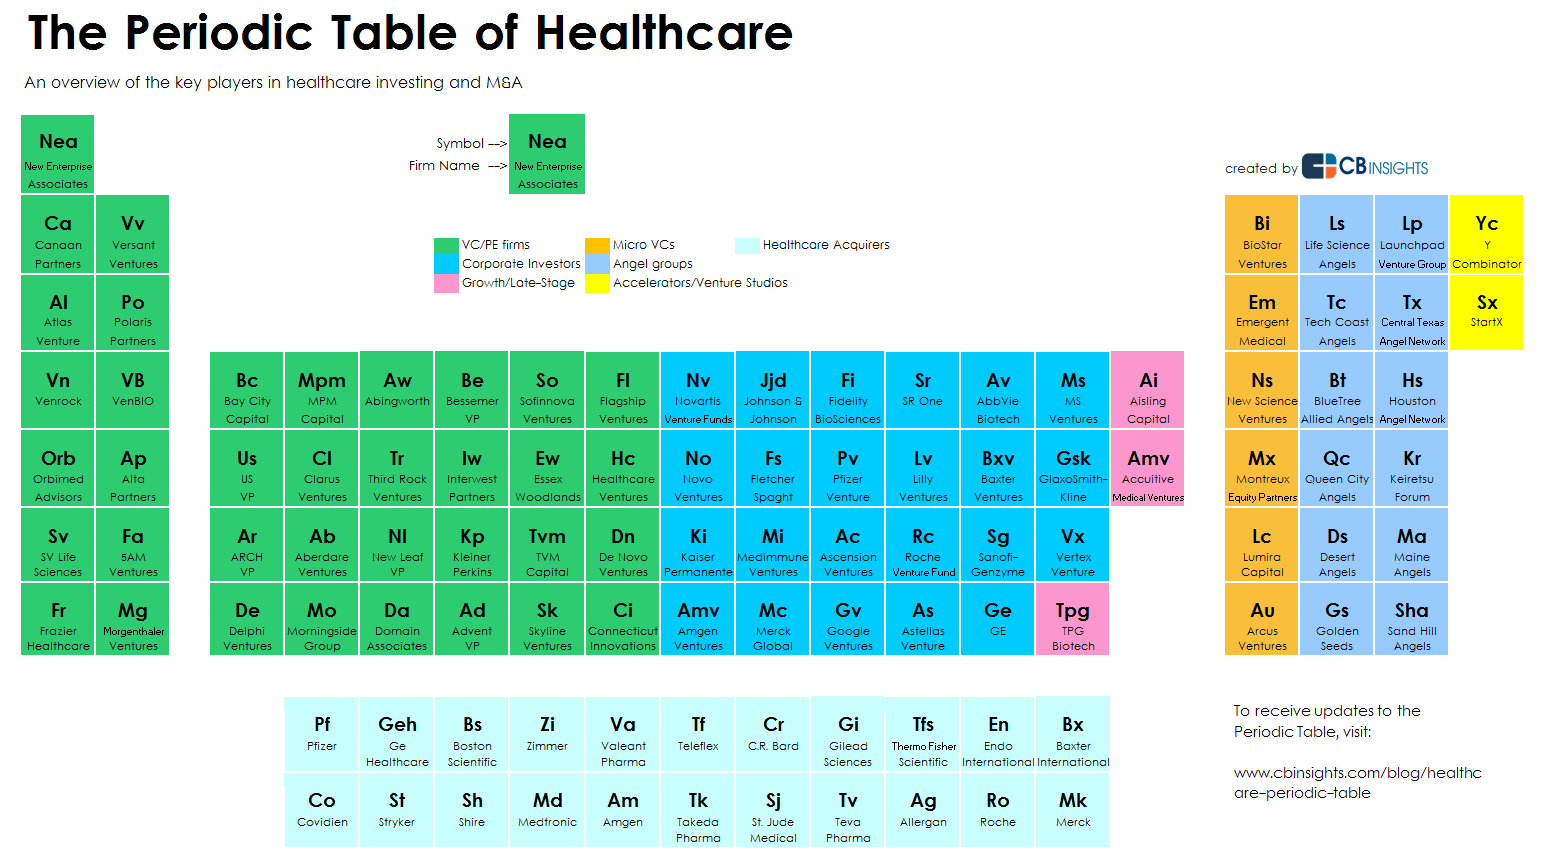 Healthcare periodic table 2014 v5g healthcare periodic table 2014 v5 gamestrikefo Choice Image